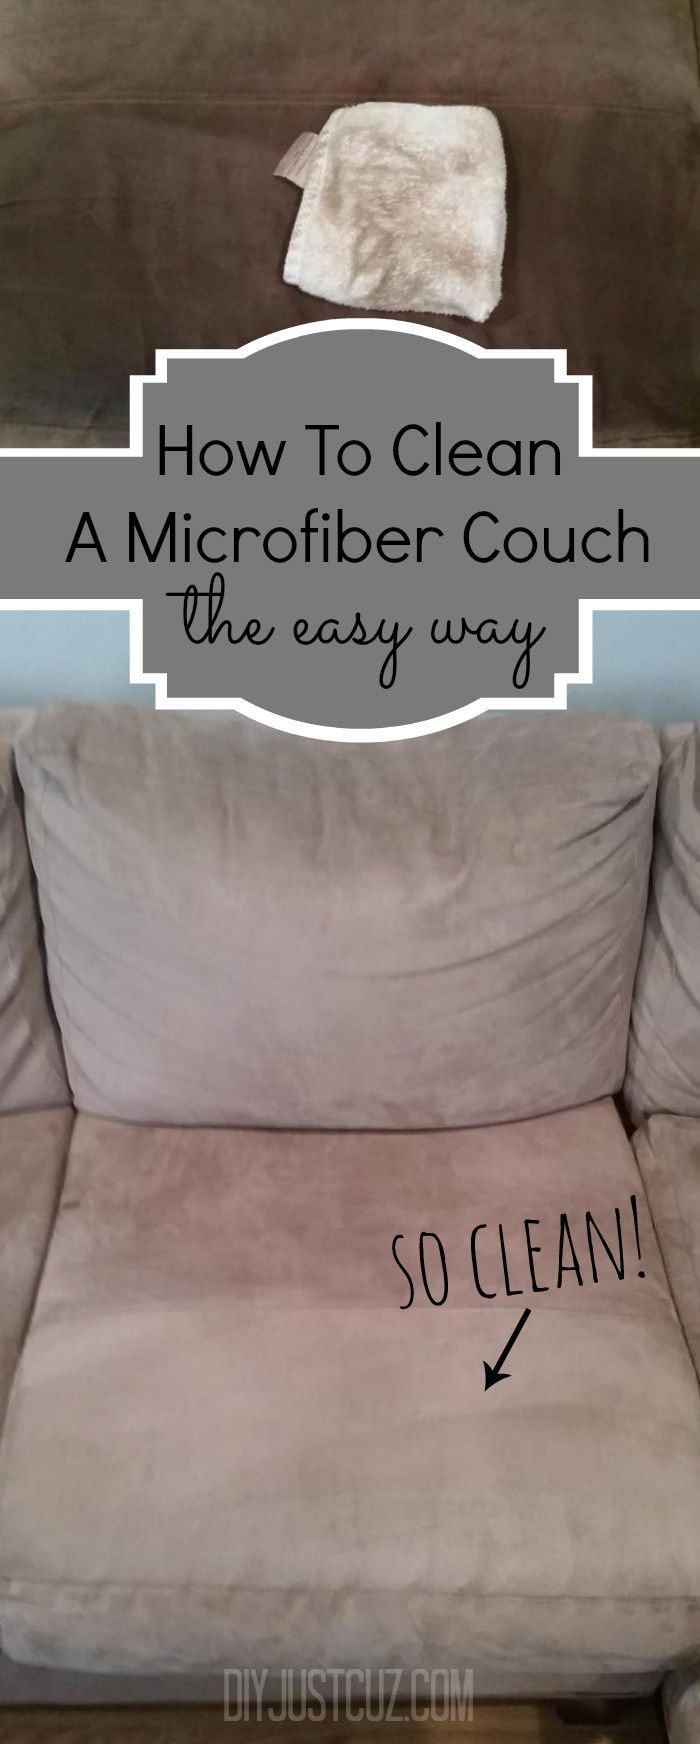 The 25+ Best Cleaning Suede Couch Ideas On Pinterest | Cleaning Suede,  Cleaning Microfiber Sofa And Micro Fiber Couch Cleaning